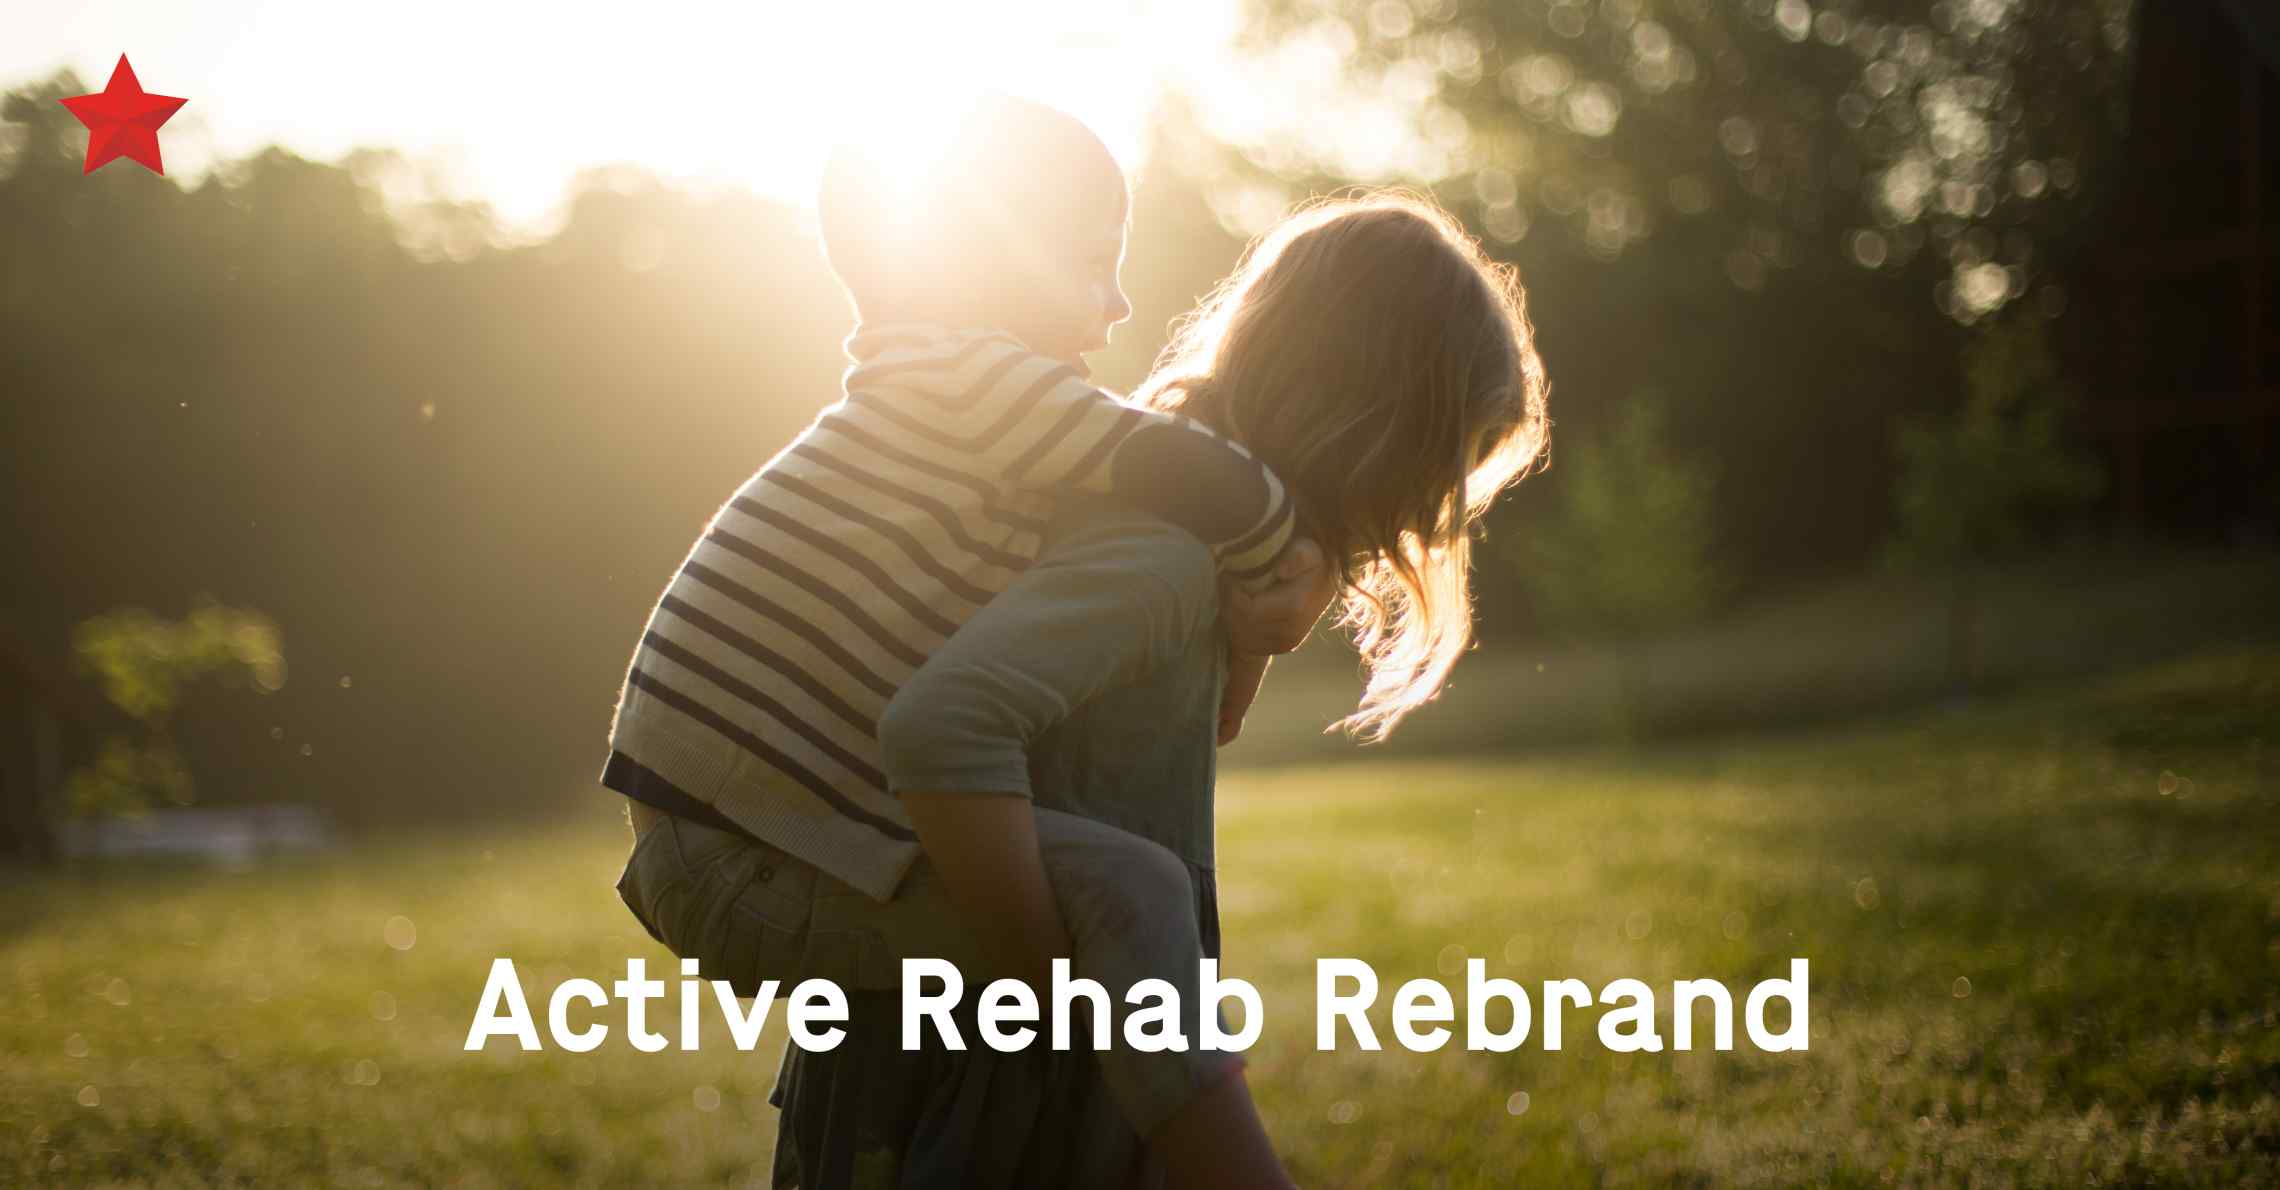 Two Become One: How a Corporate Rebrand Brought Active Rehab Together